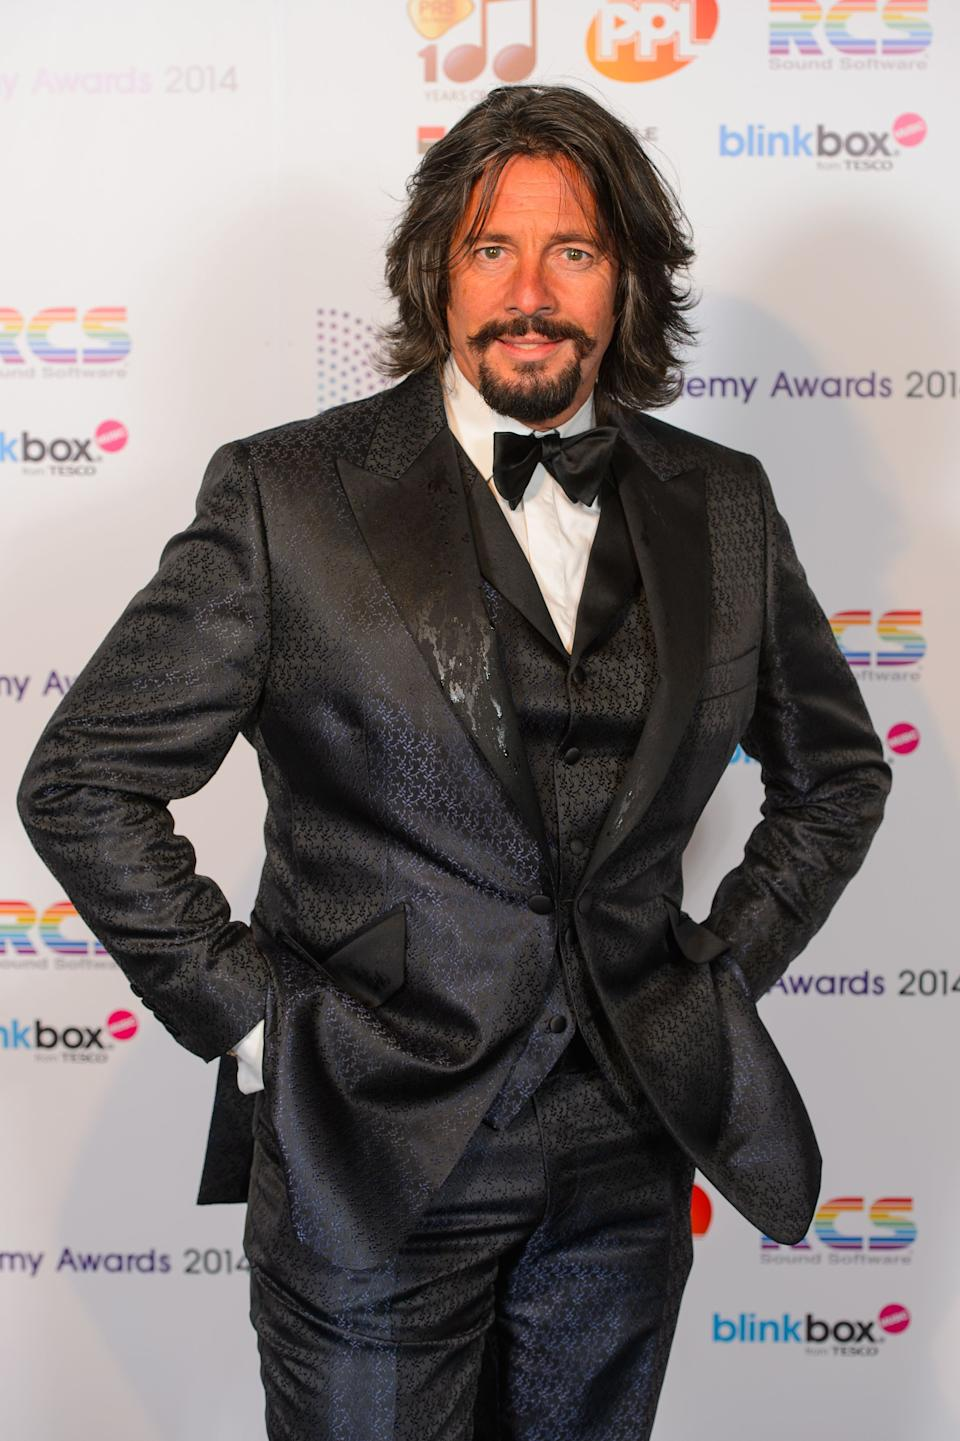 Laurence Llewelyn Bowen arriving at the Radio Academy Awards 2014, at the Grosvenor House Hotel, in central London.